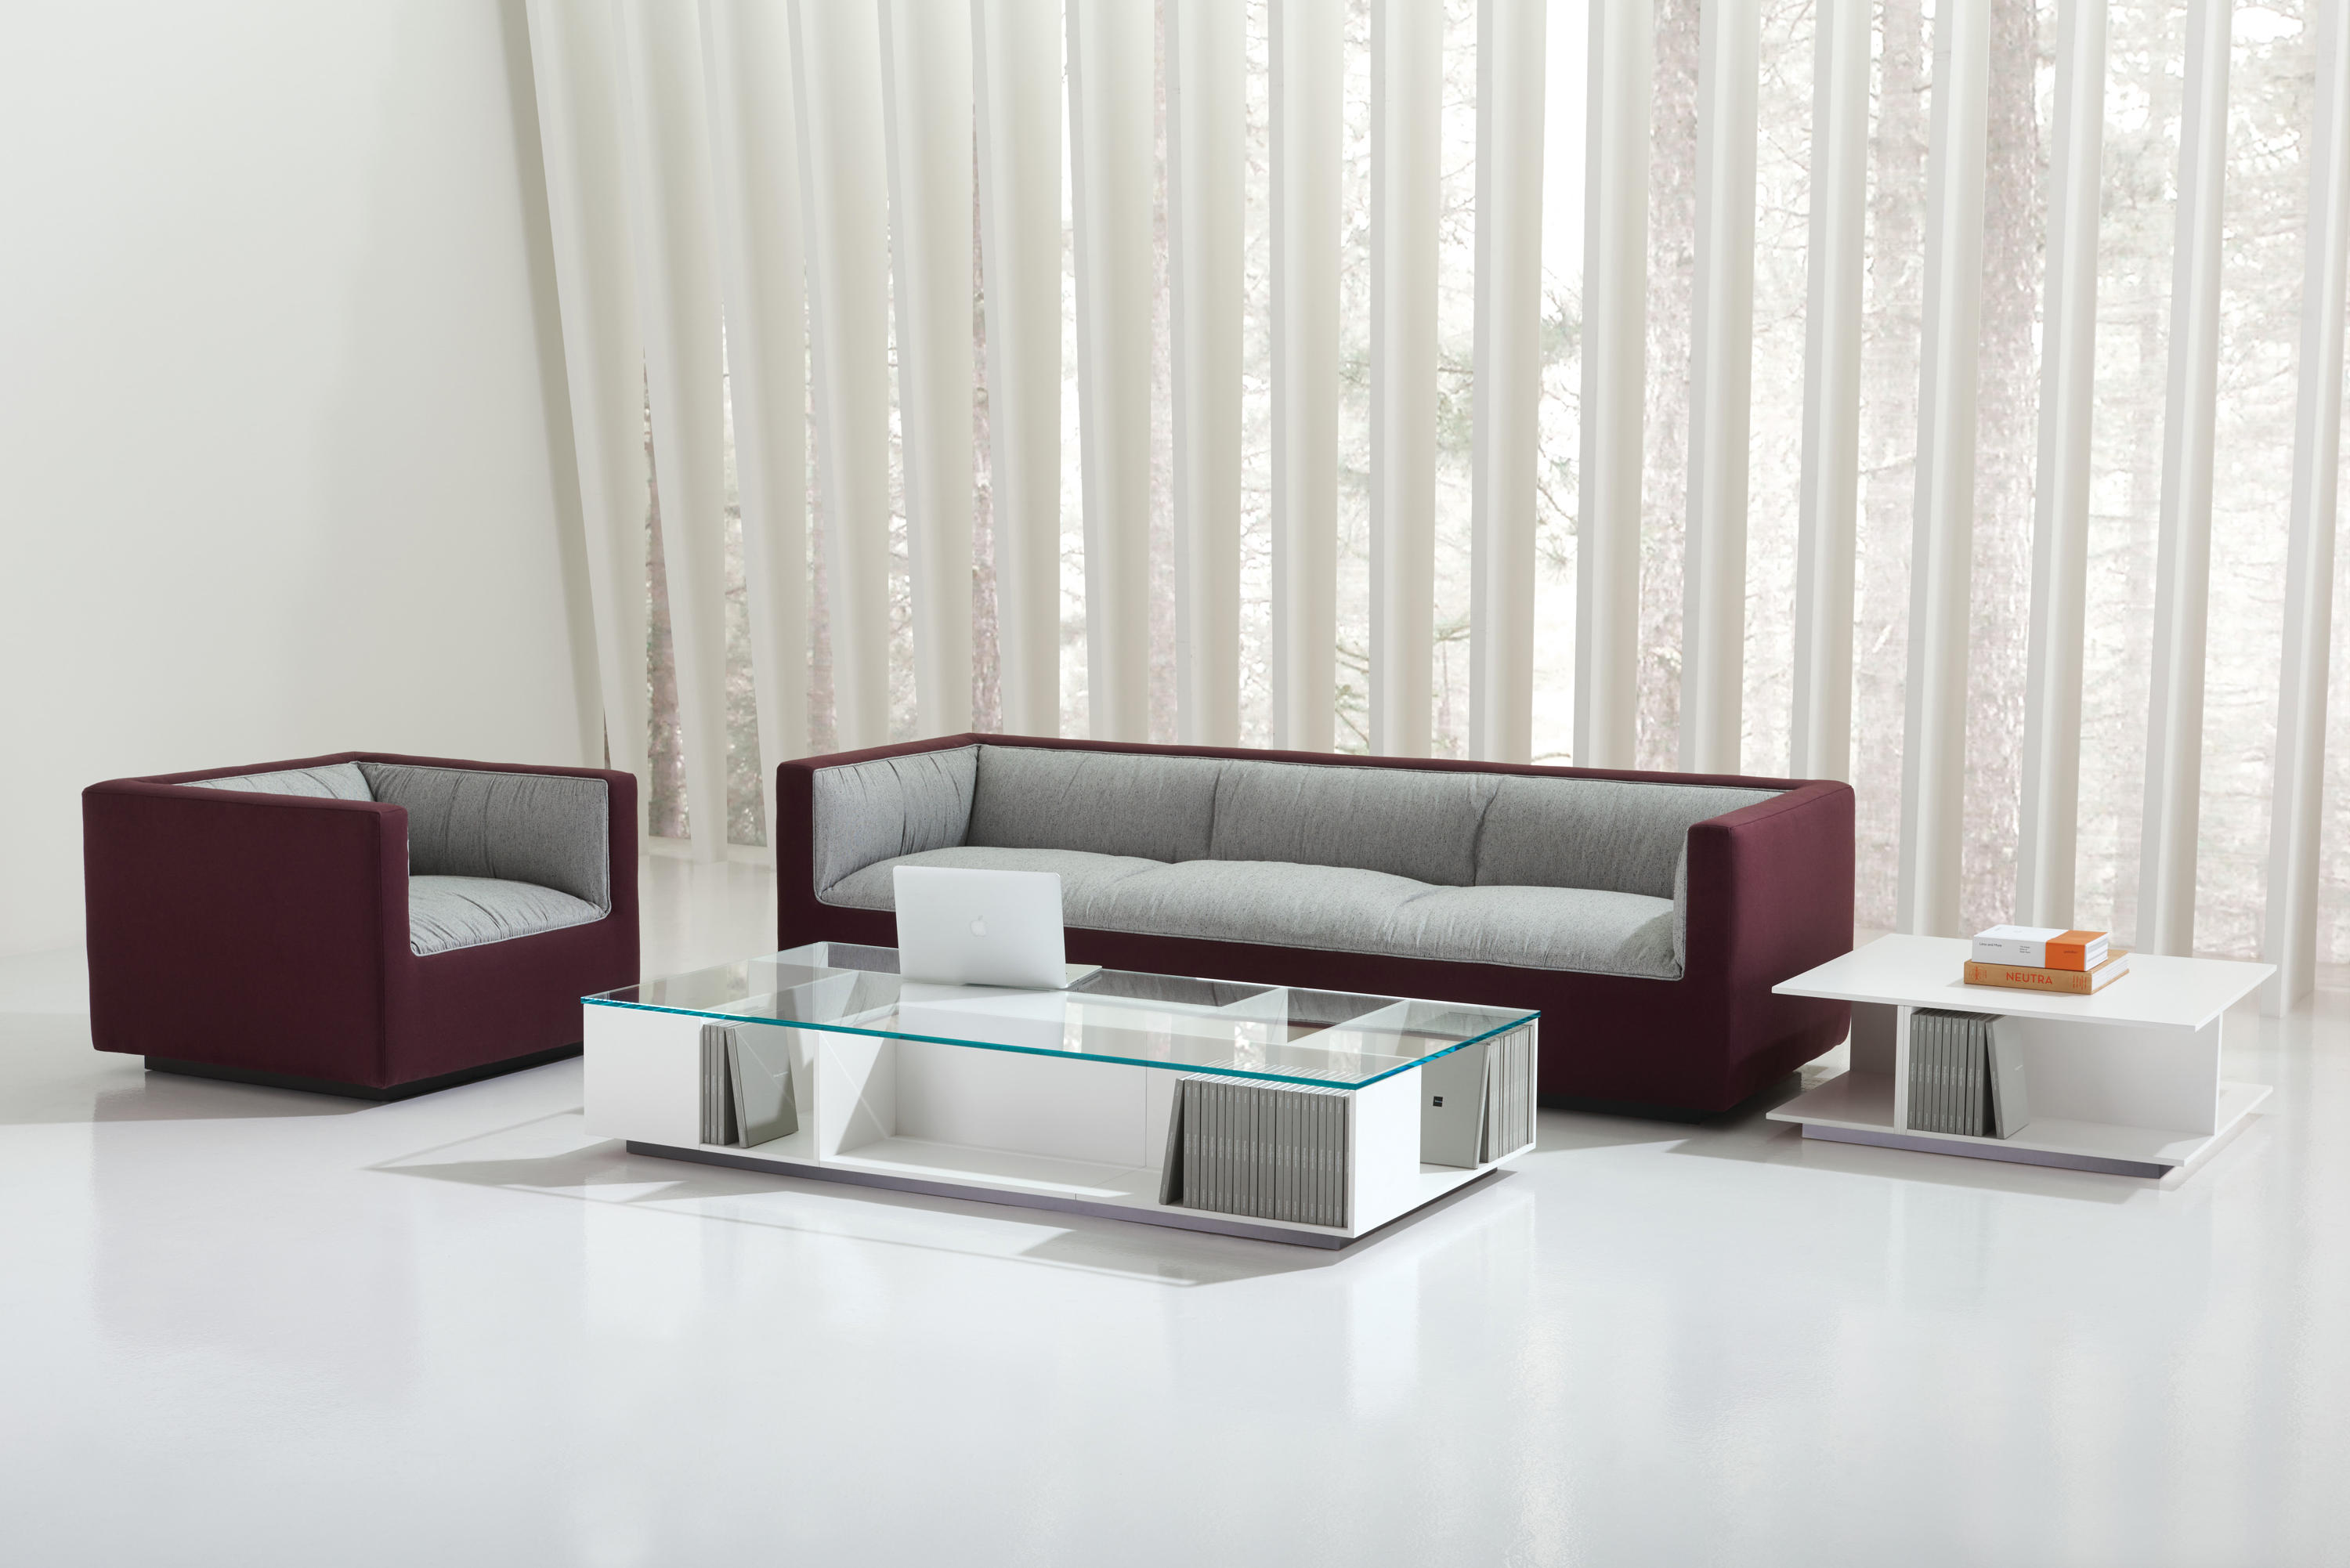 Infinito Lounge Sectional Chaise Modular Seating